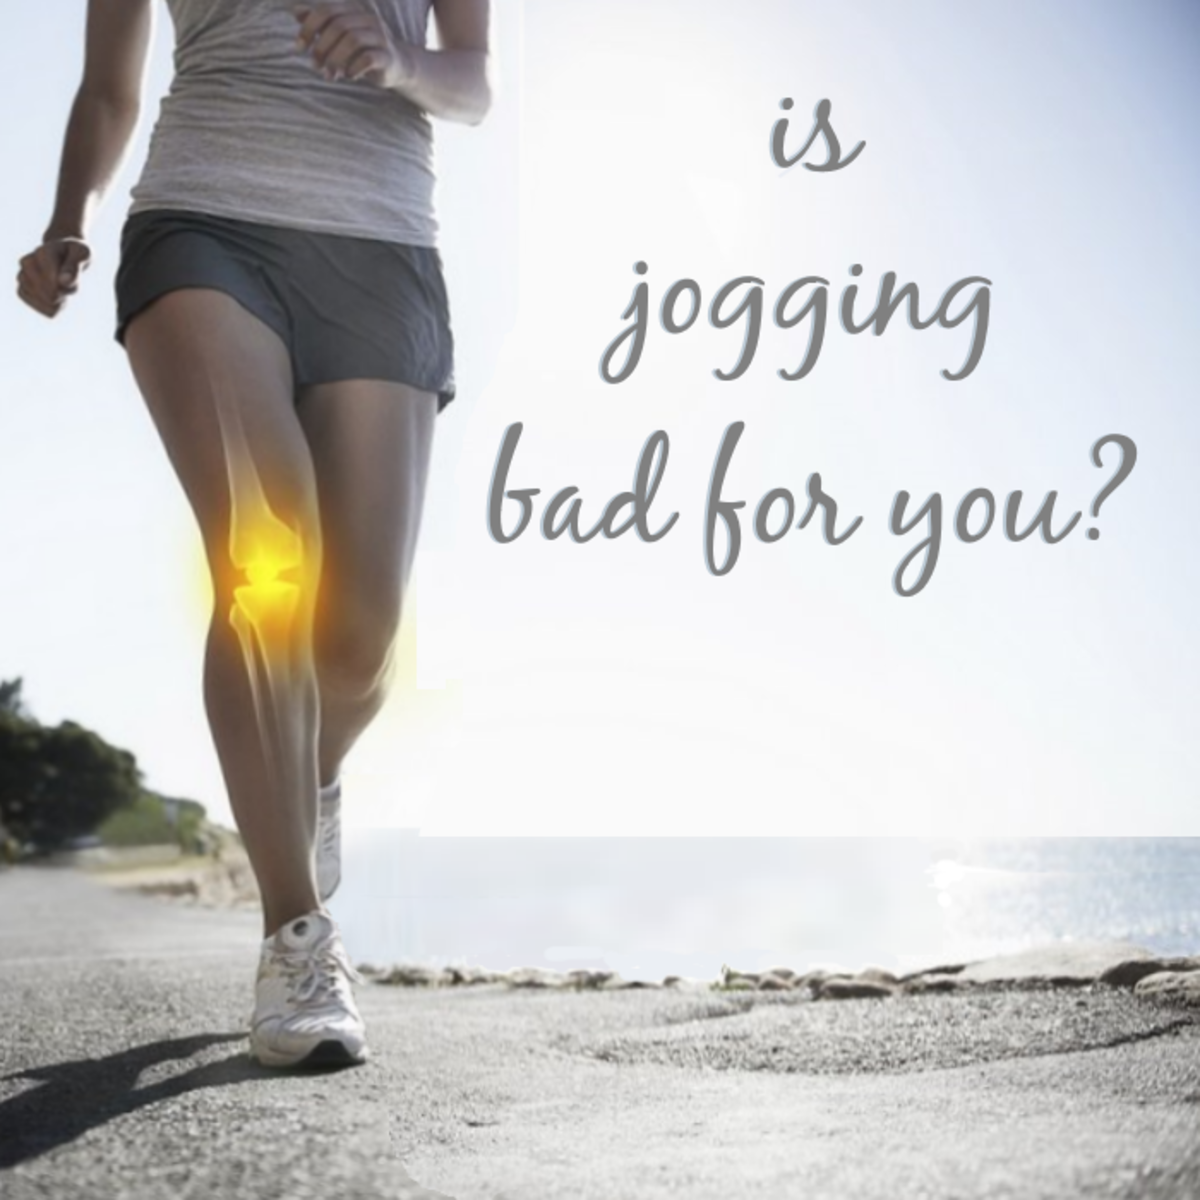 6 Reasons Why Jogging May Be Bad for You